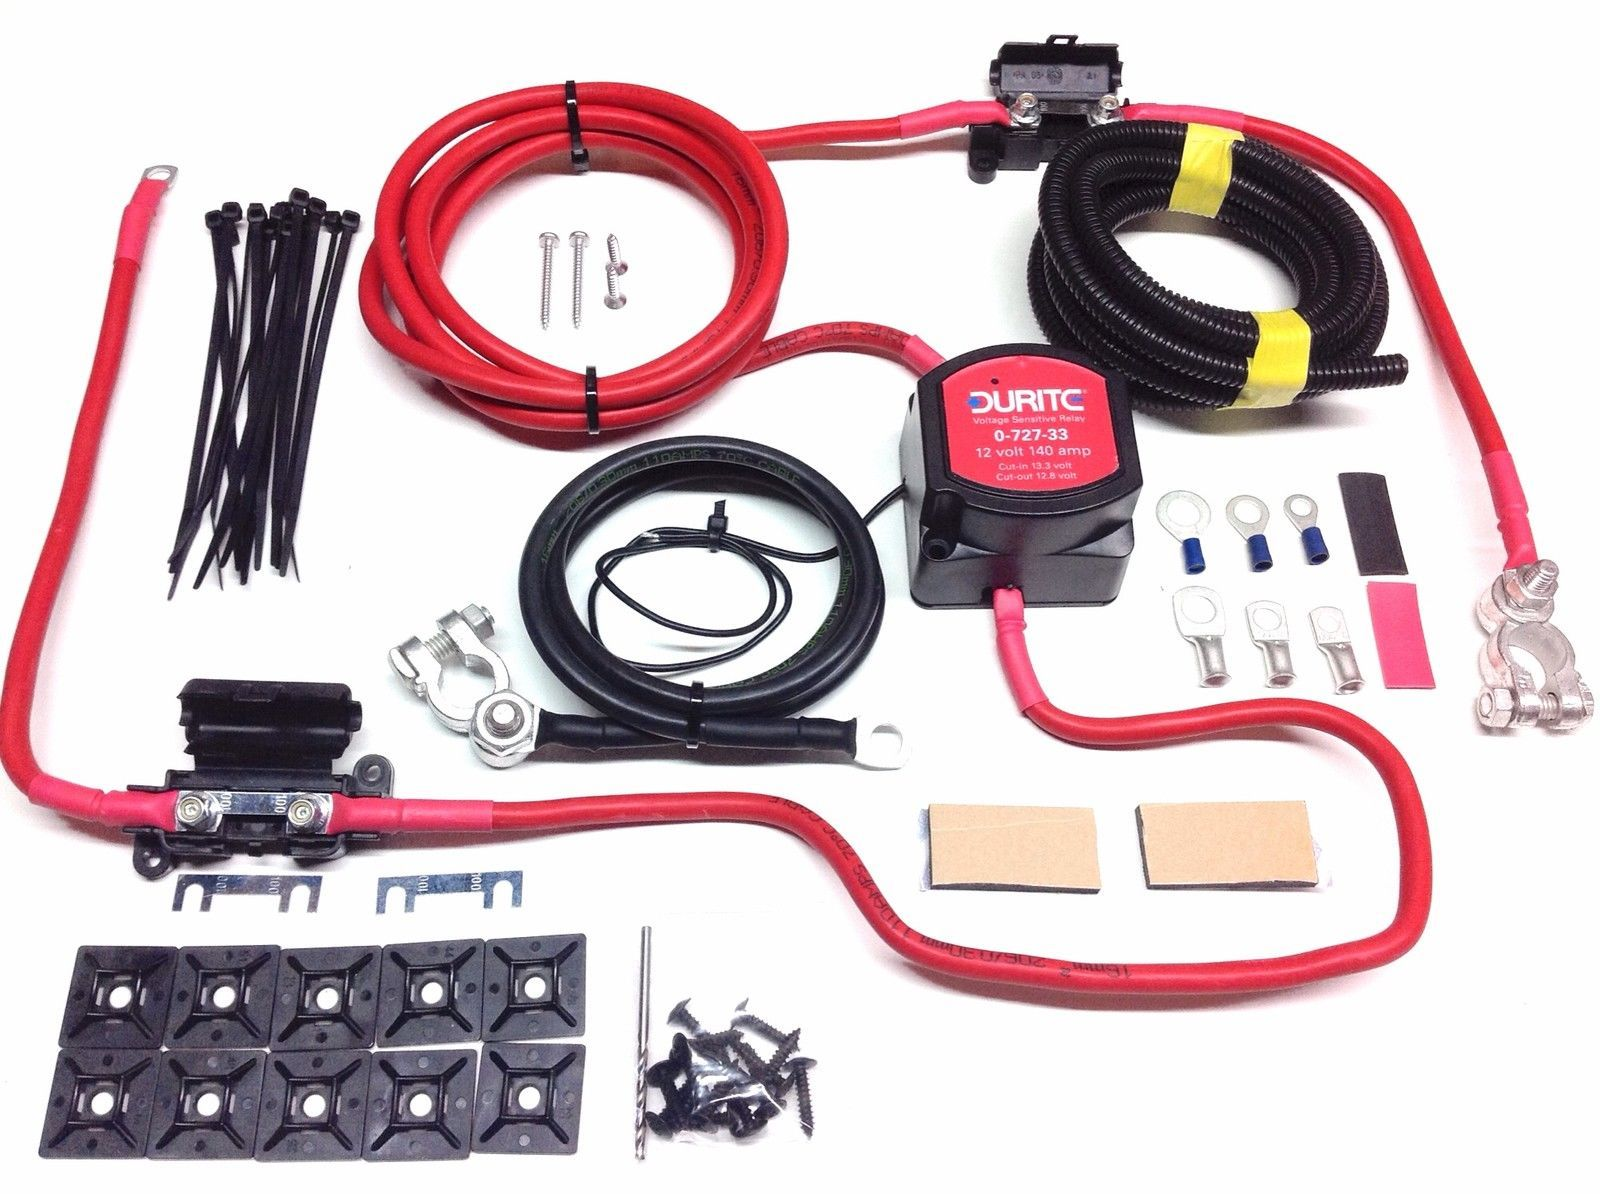 5mtr split charge kit 12v 140a durite vsr 110amp ready made split charge diode relays and flasher units, 12 volt